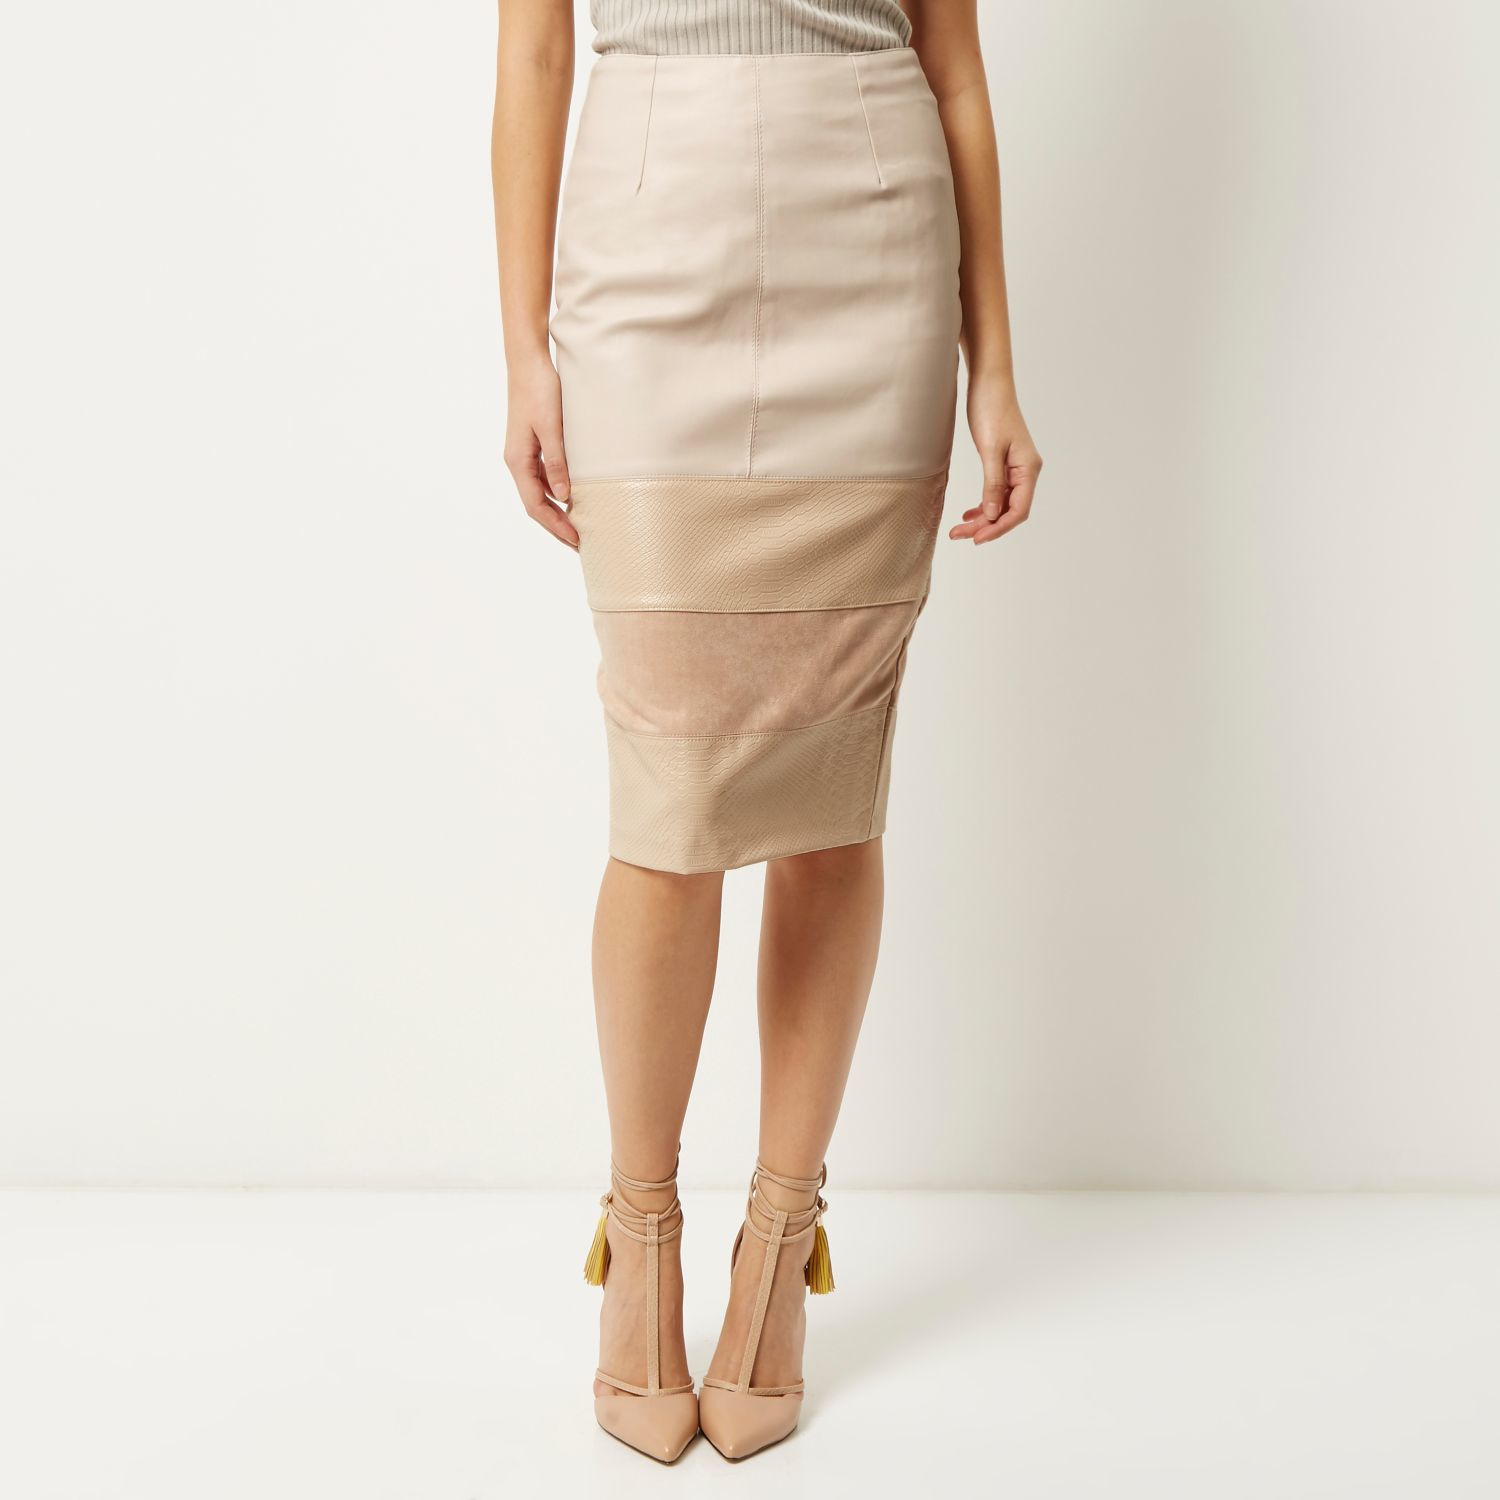 Pink patent leather pencil skirt – Modern skirts blog for you